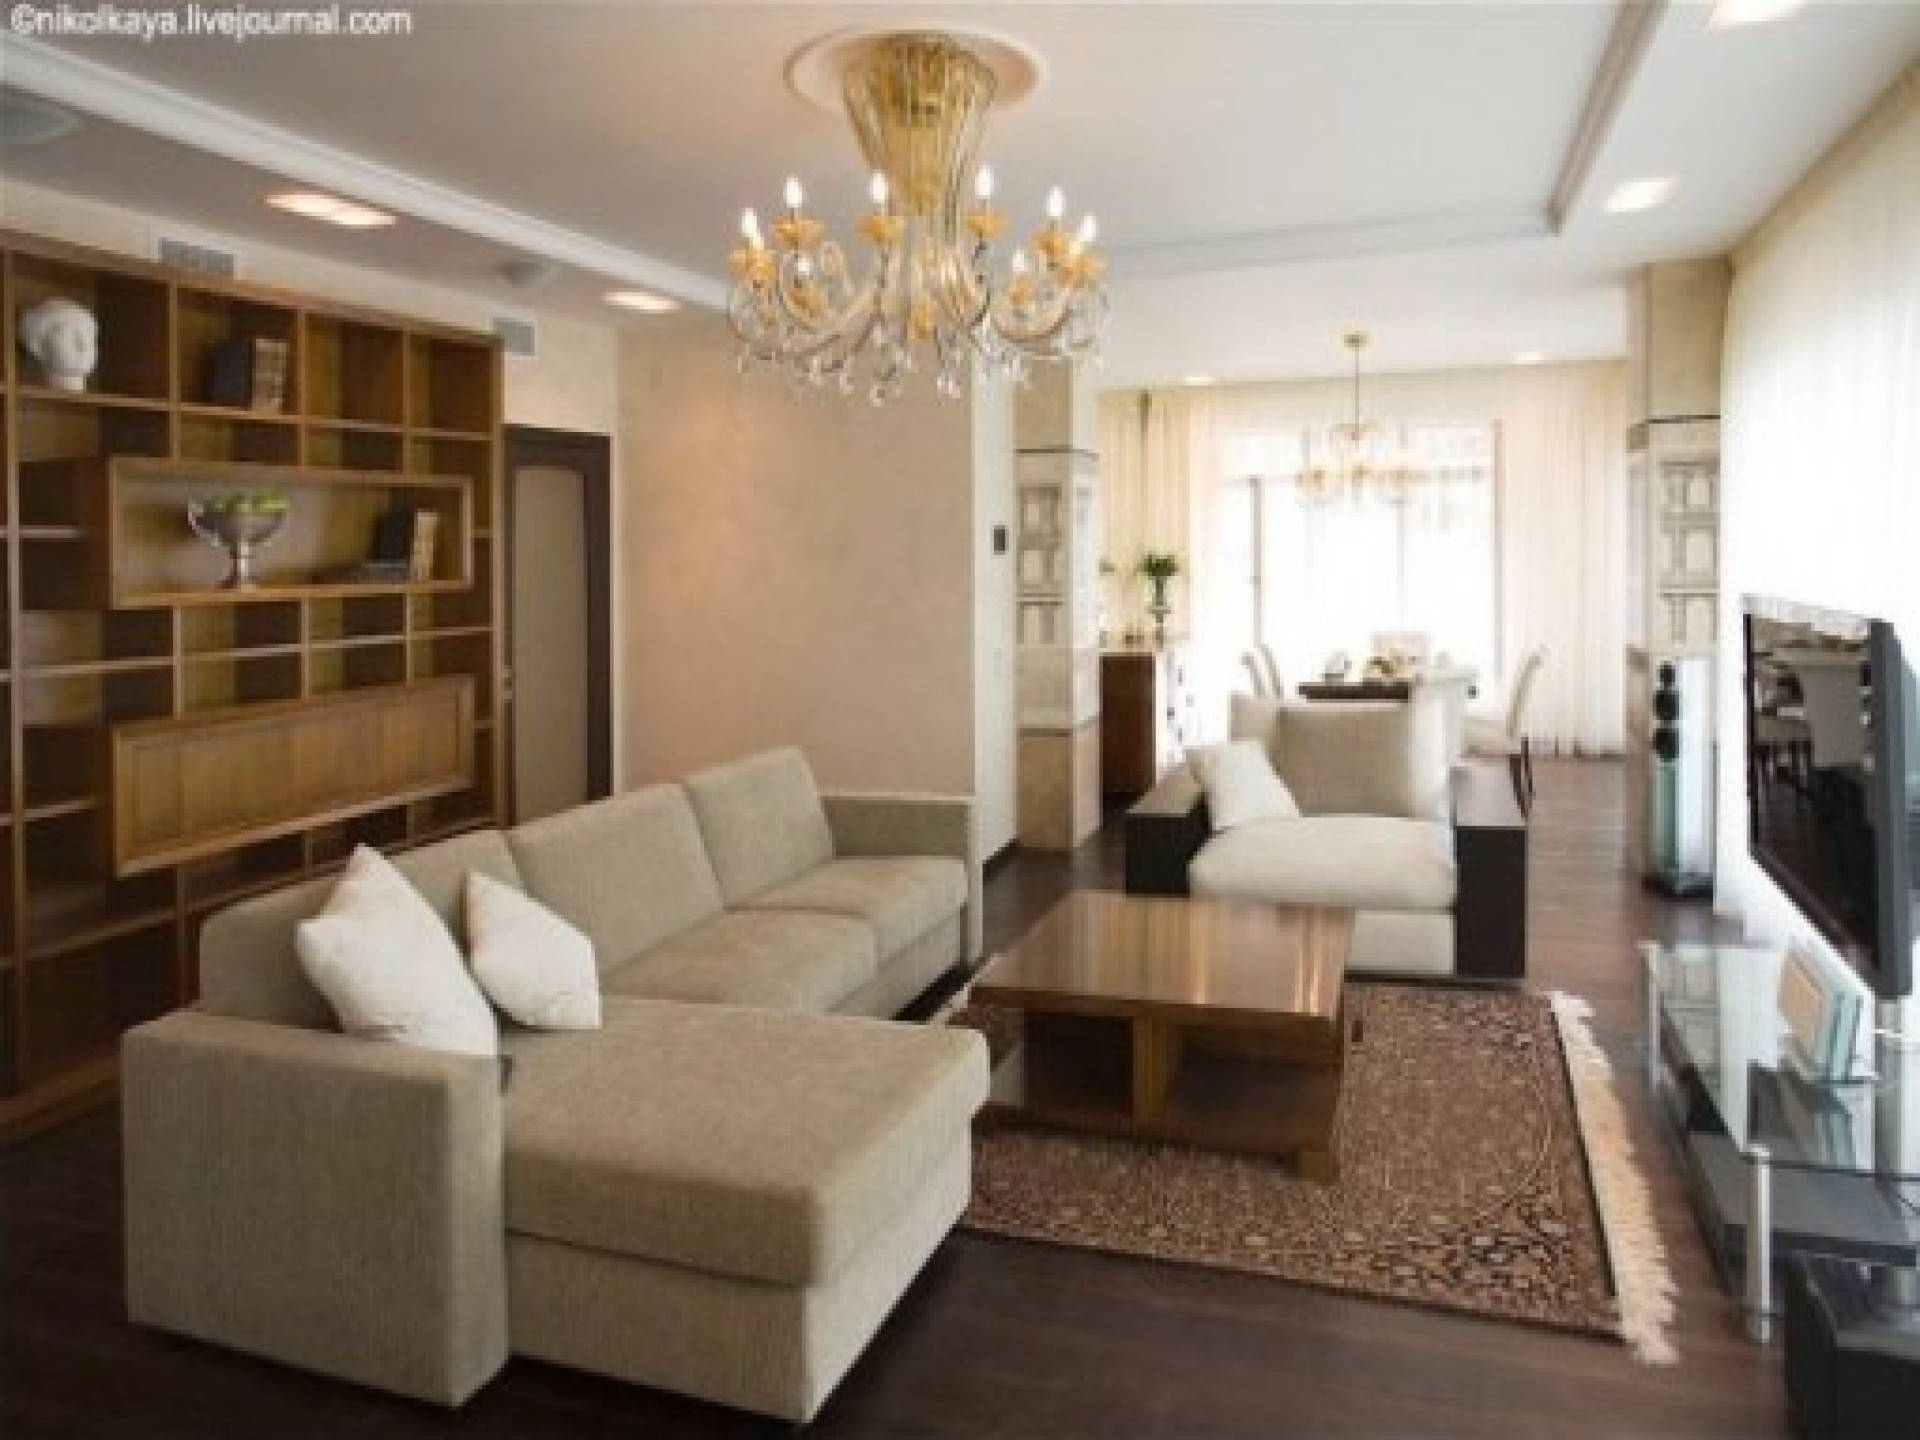 Beautiful Apartment Sectional Sofa Contemporary – House Design Pertaining To Apartment Sofa Sectional (Image 7 of 30)